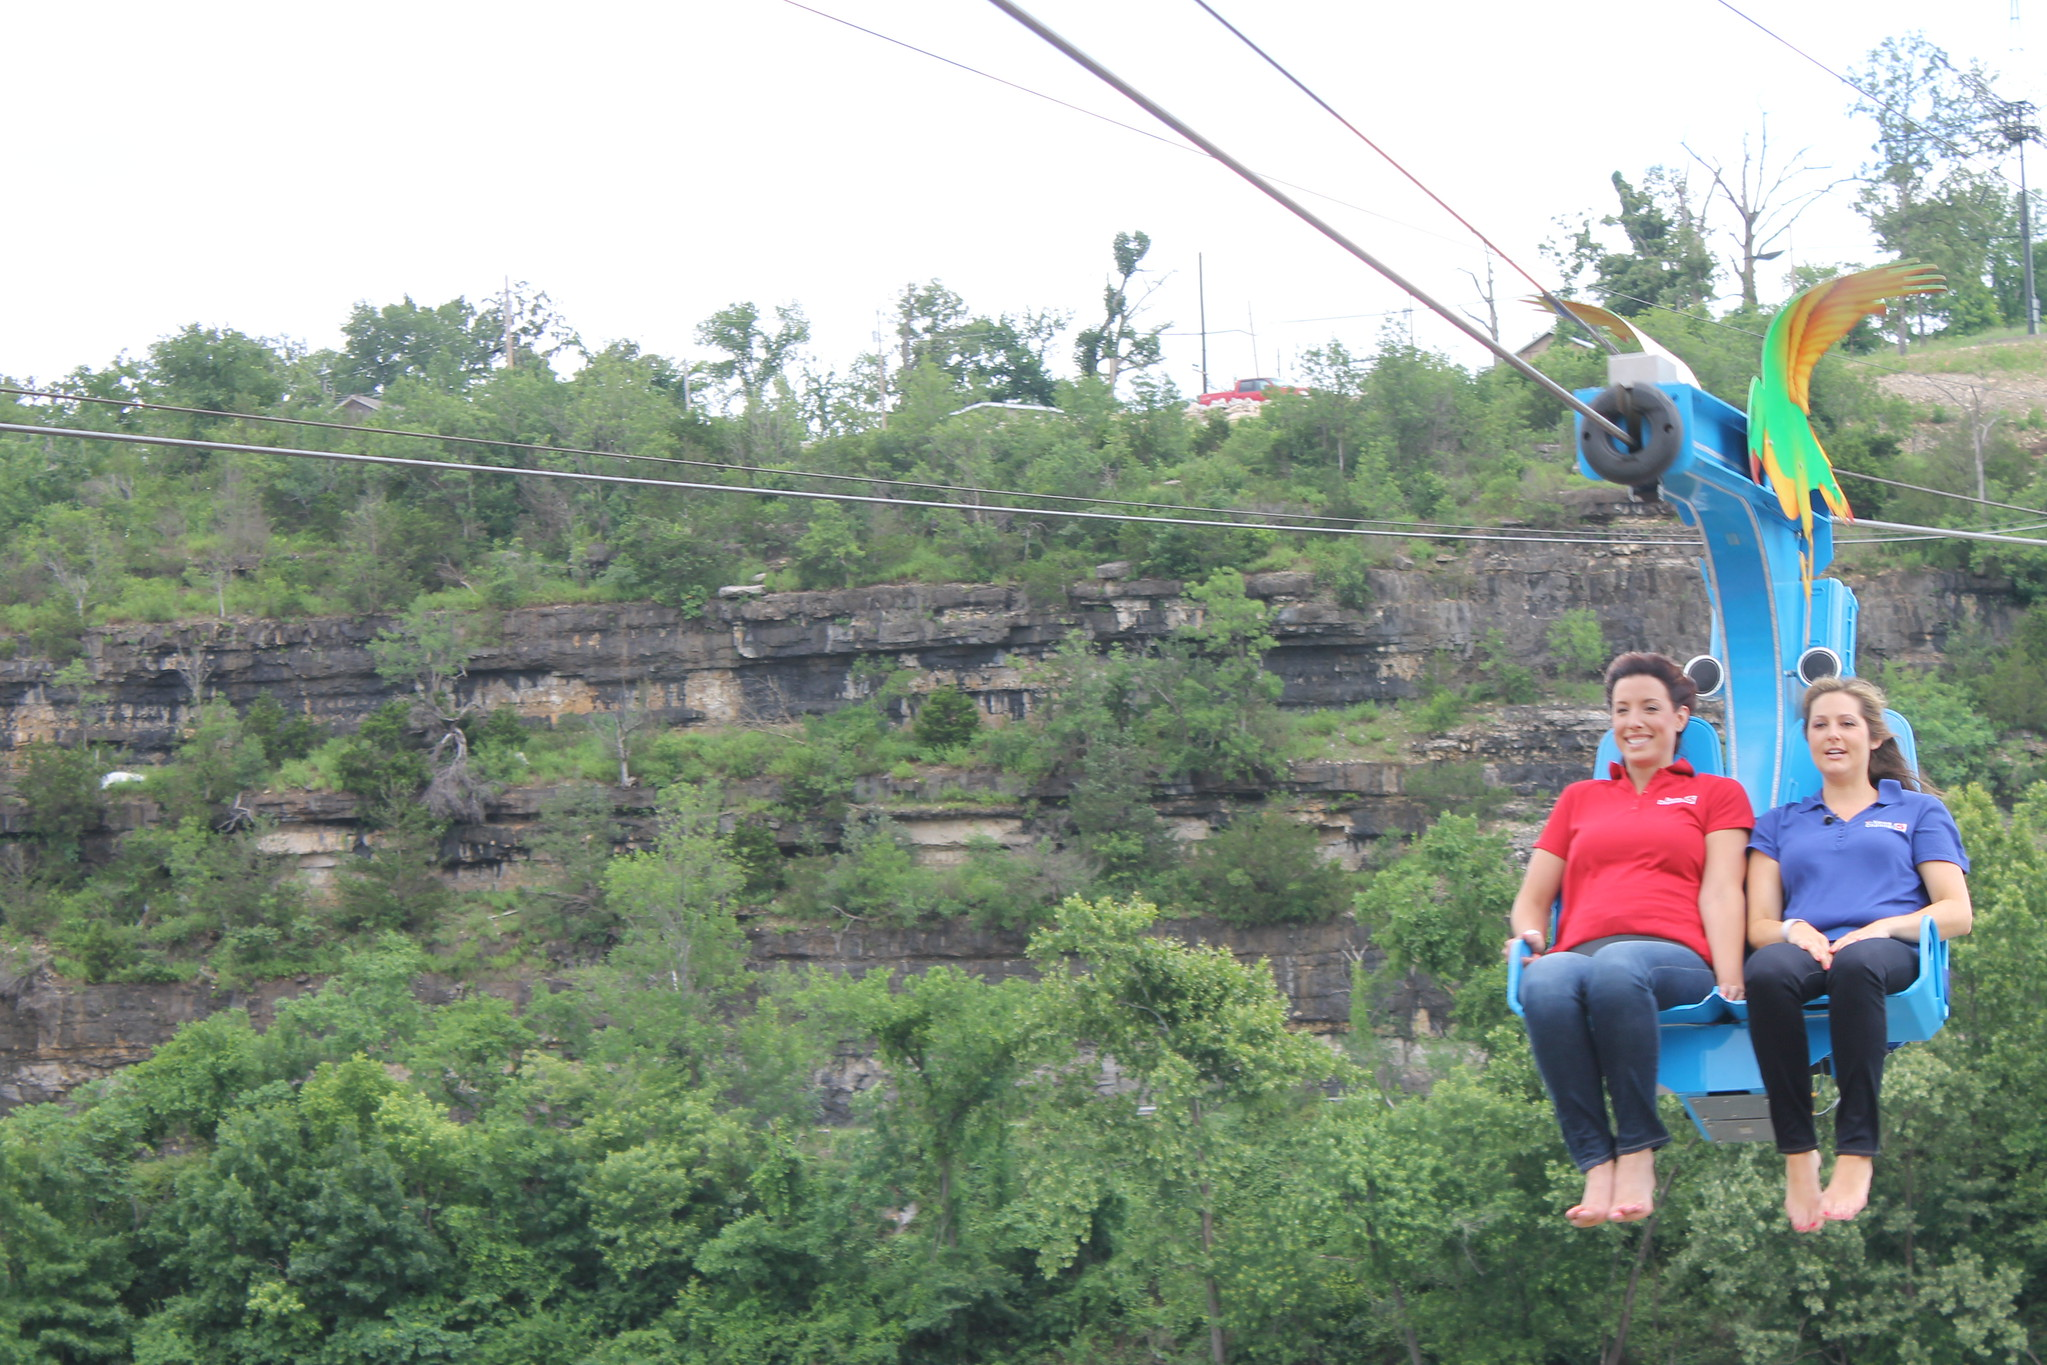 Where to Go Ziplining in Branson